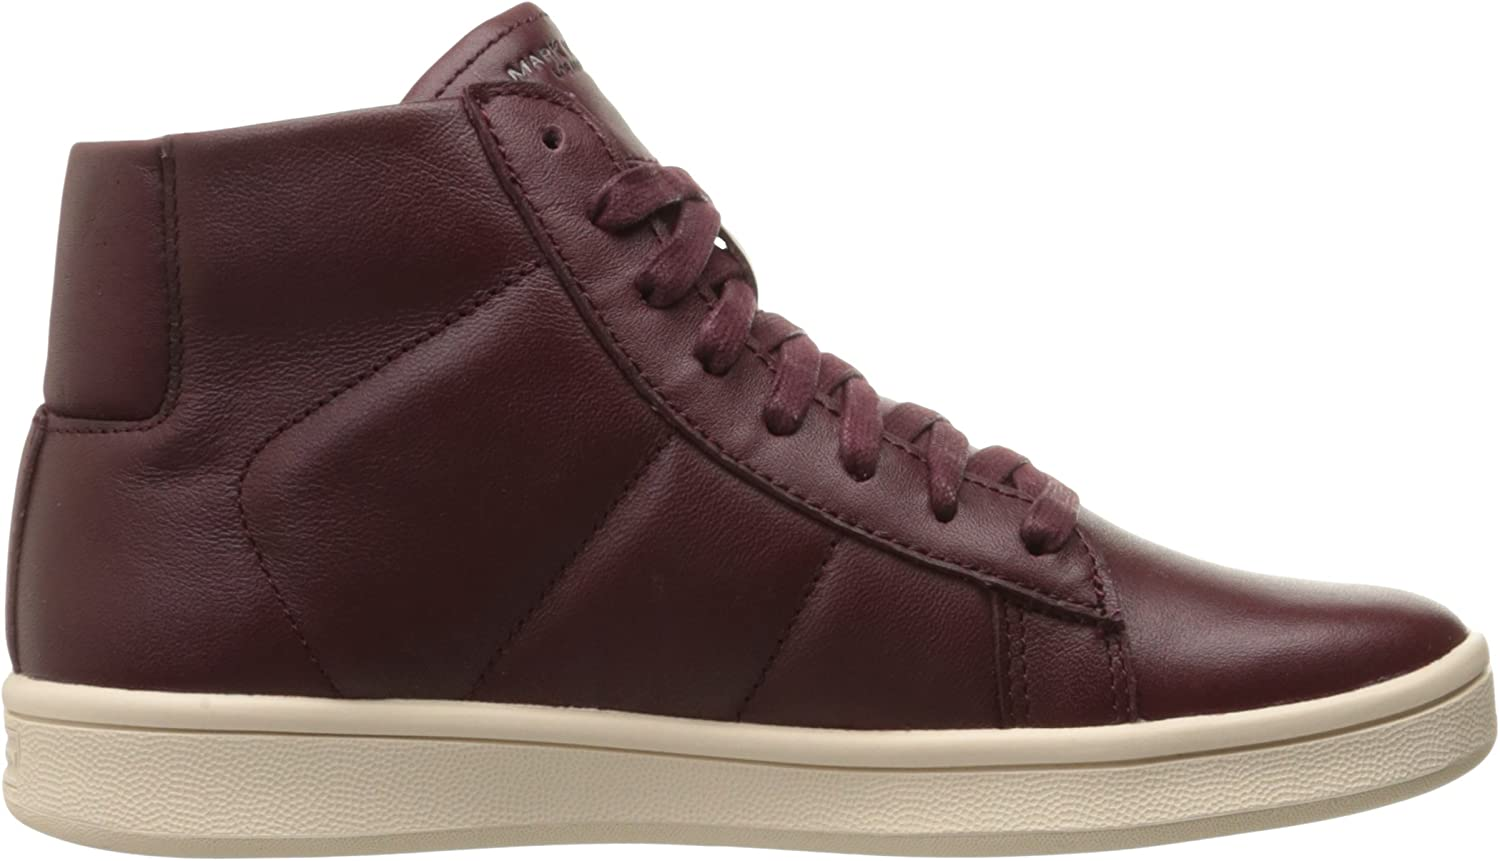 Mark Nason Los Angeles Women's Buckner Fashion Sneaker Burgundy